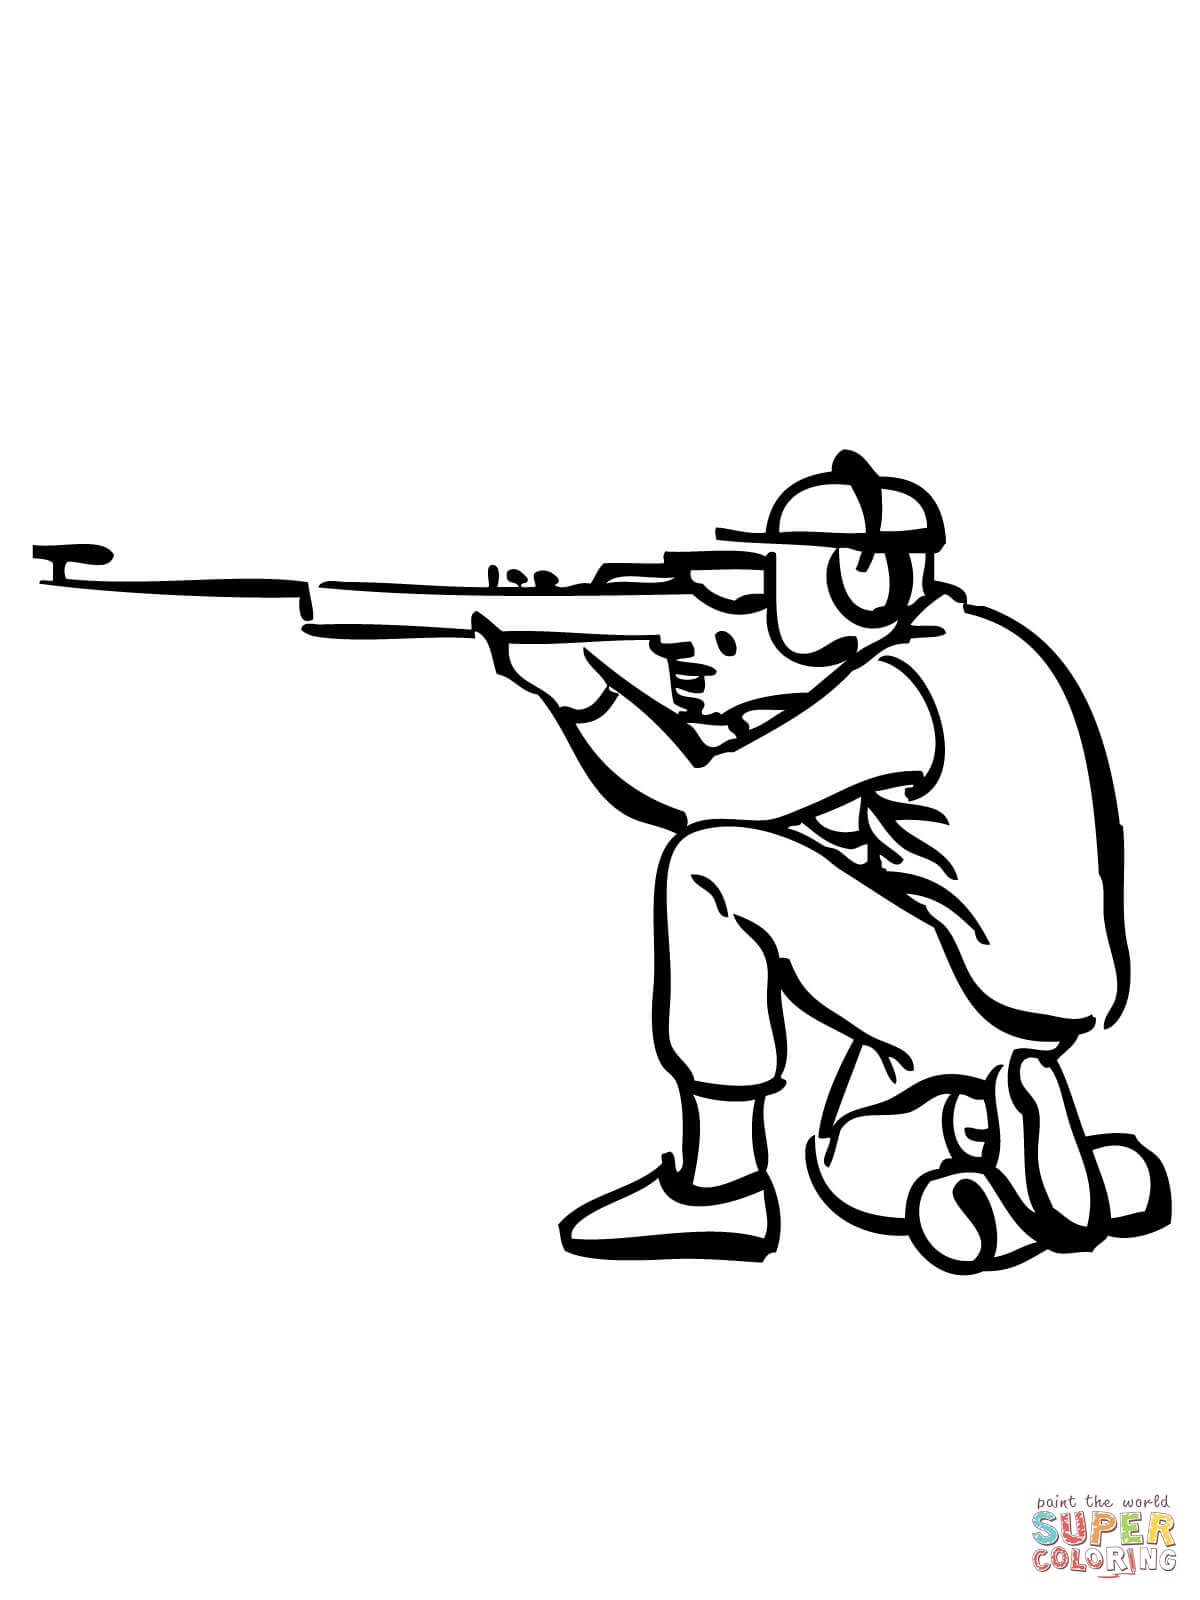 Rifle Shooting Coloring Page